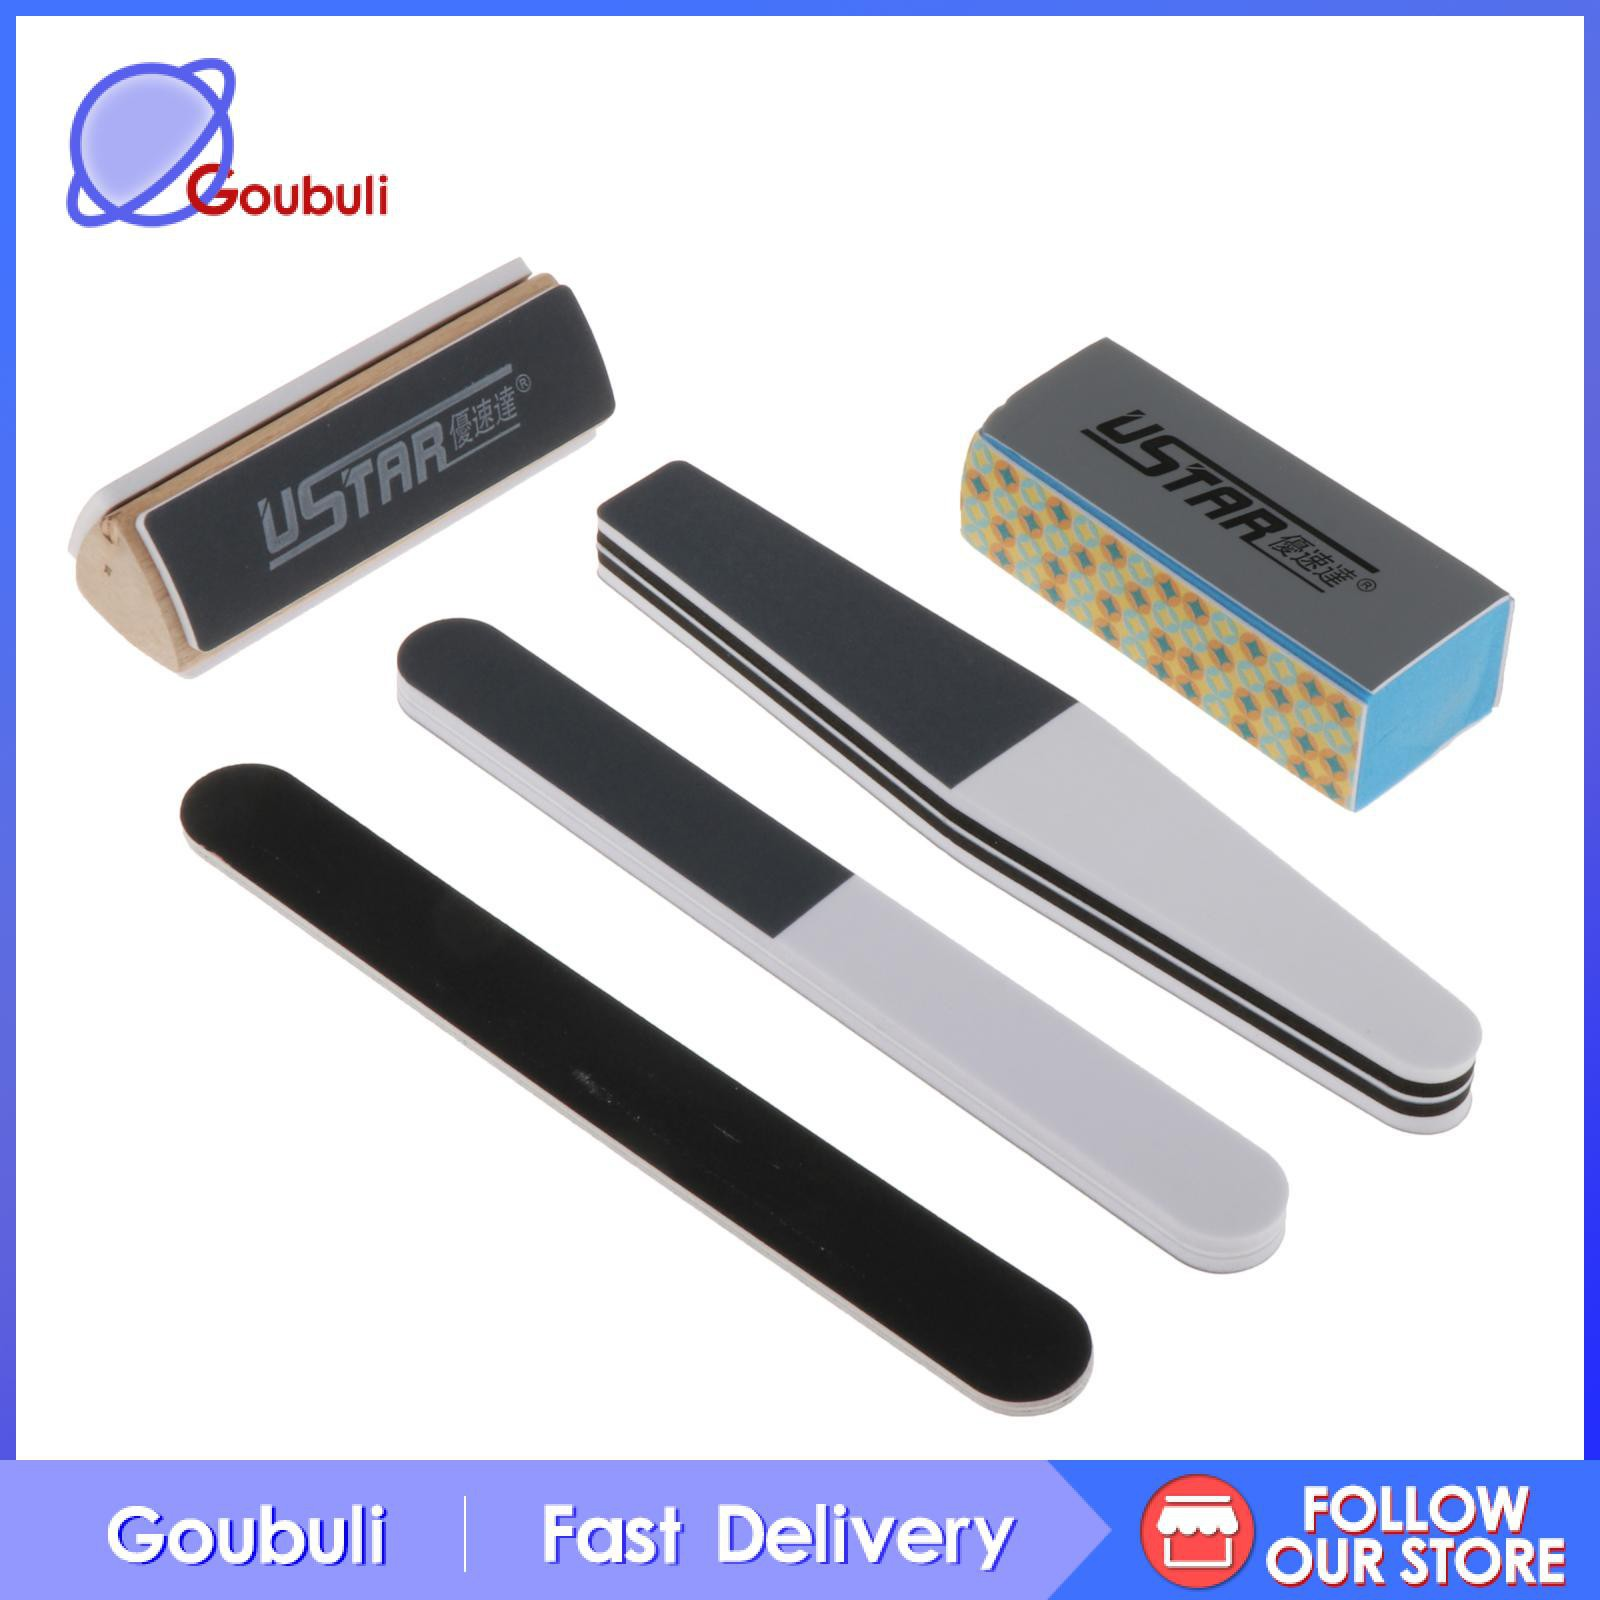 [Goubuli] Craft Model Tools Kit 5Pcs Sanding & Polishing Tools Kit for Craft Model